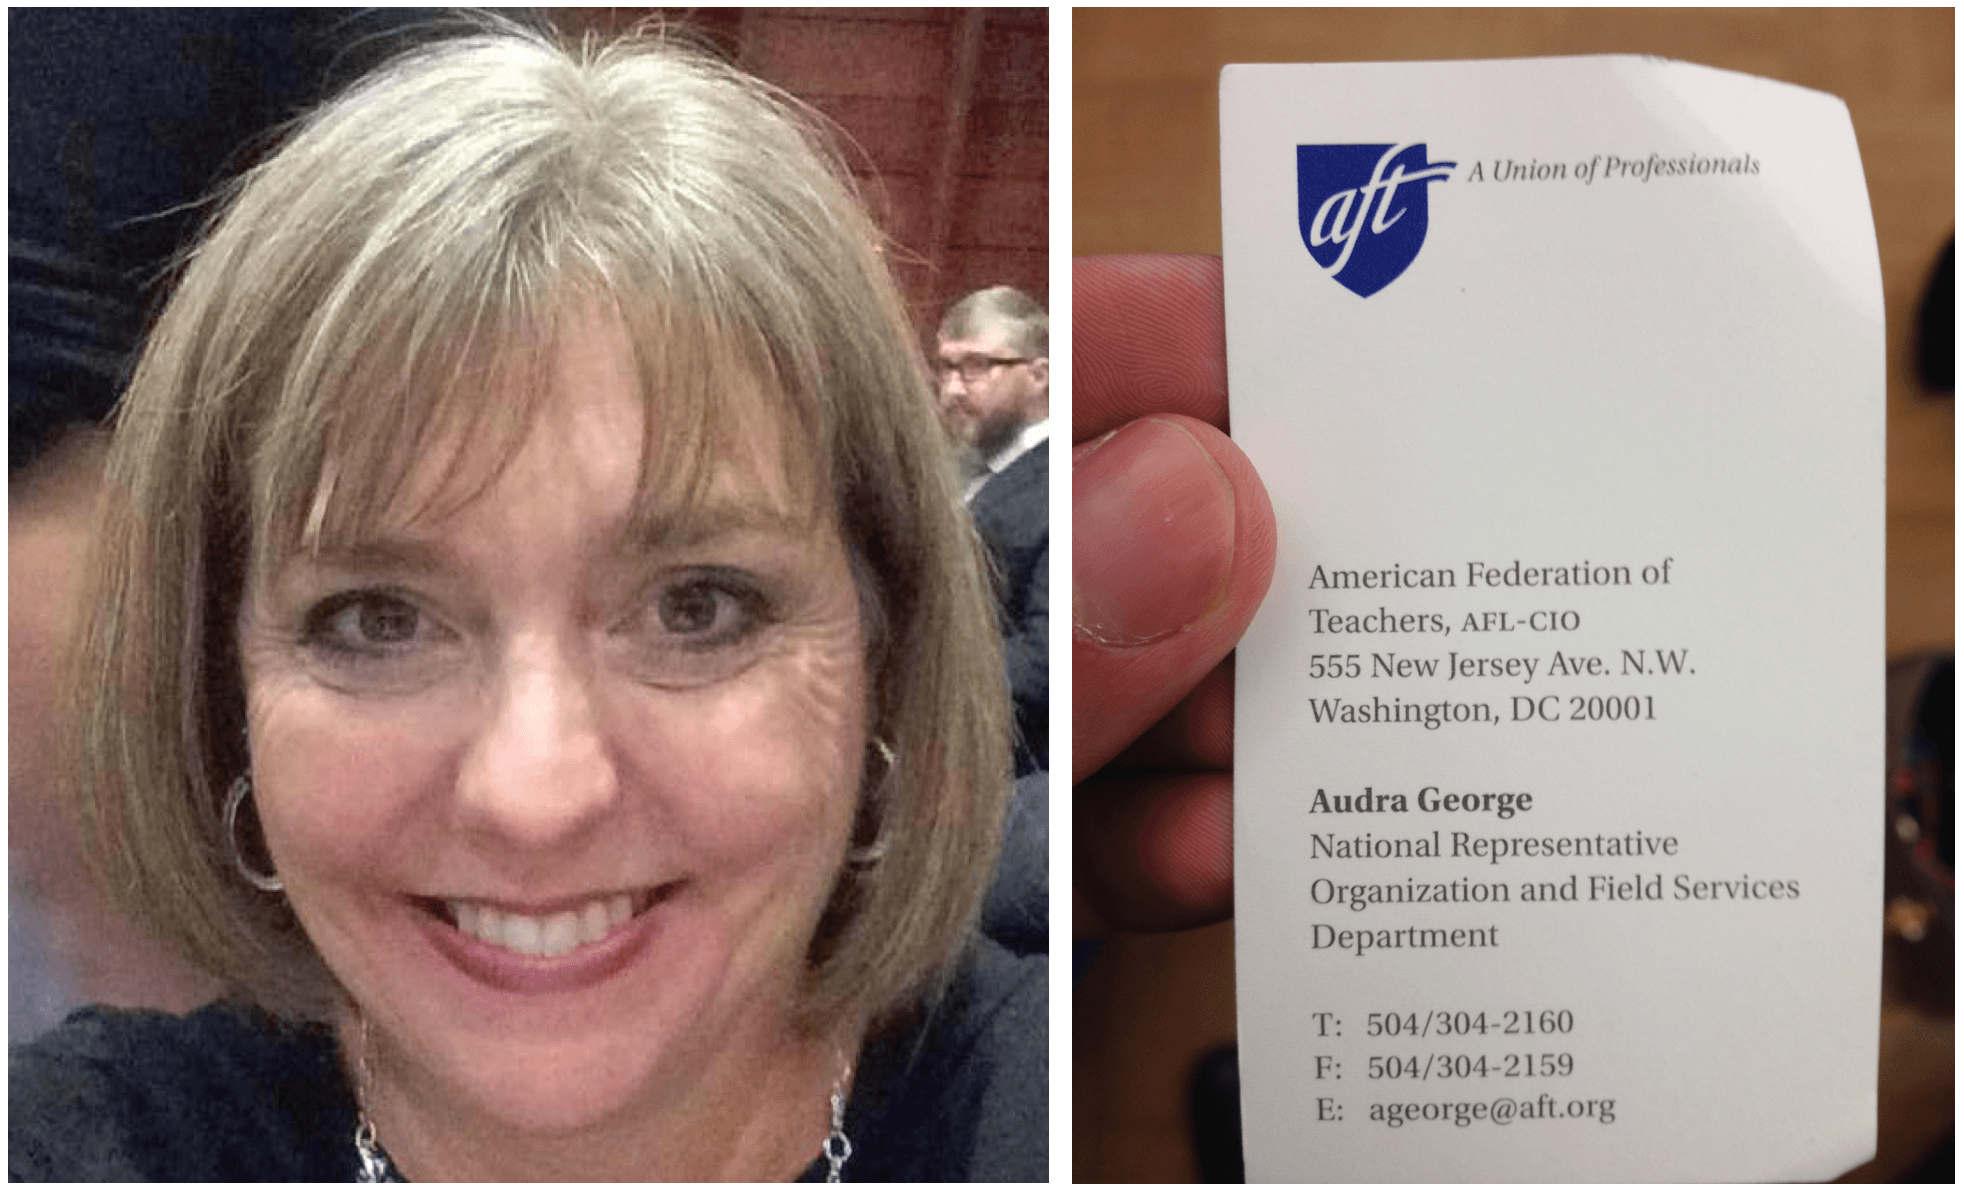 AFT's Audra George: Not as nice as she appears in this photo.